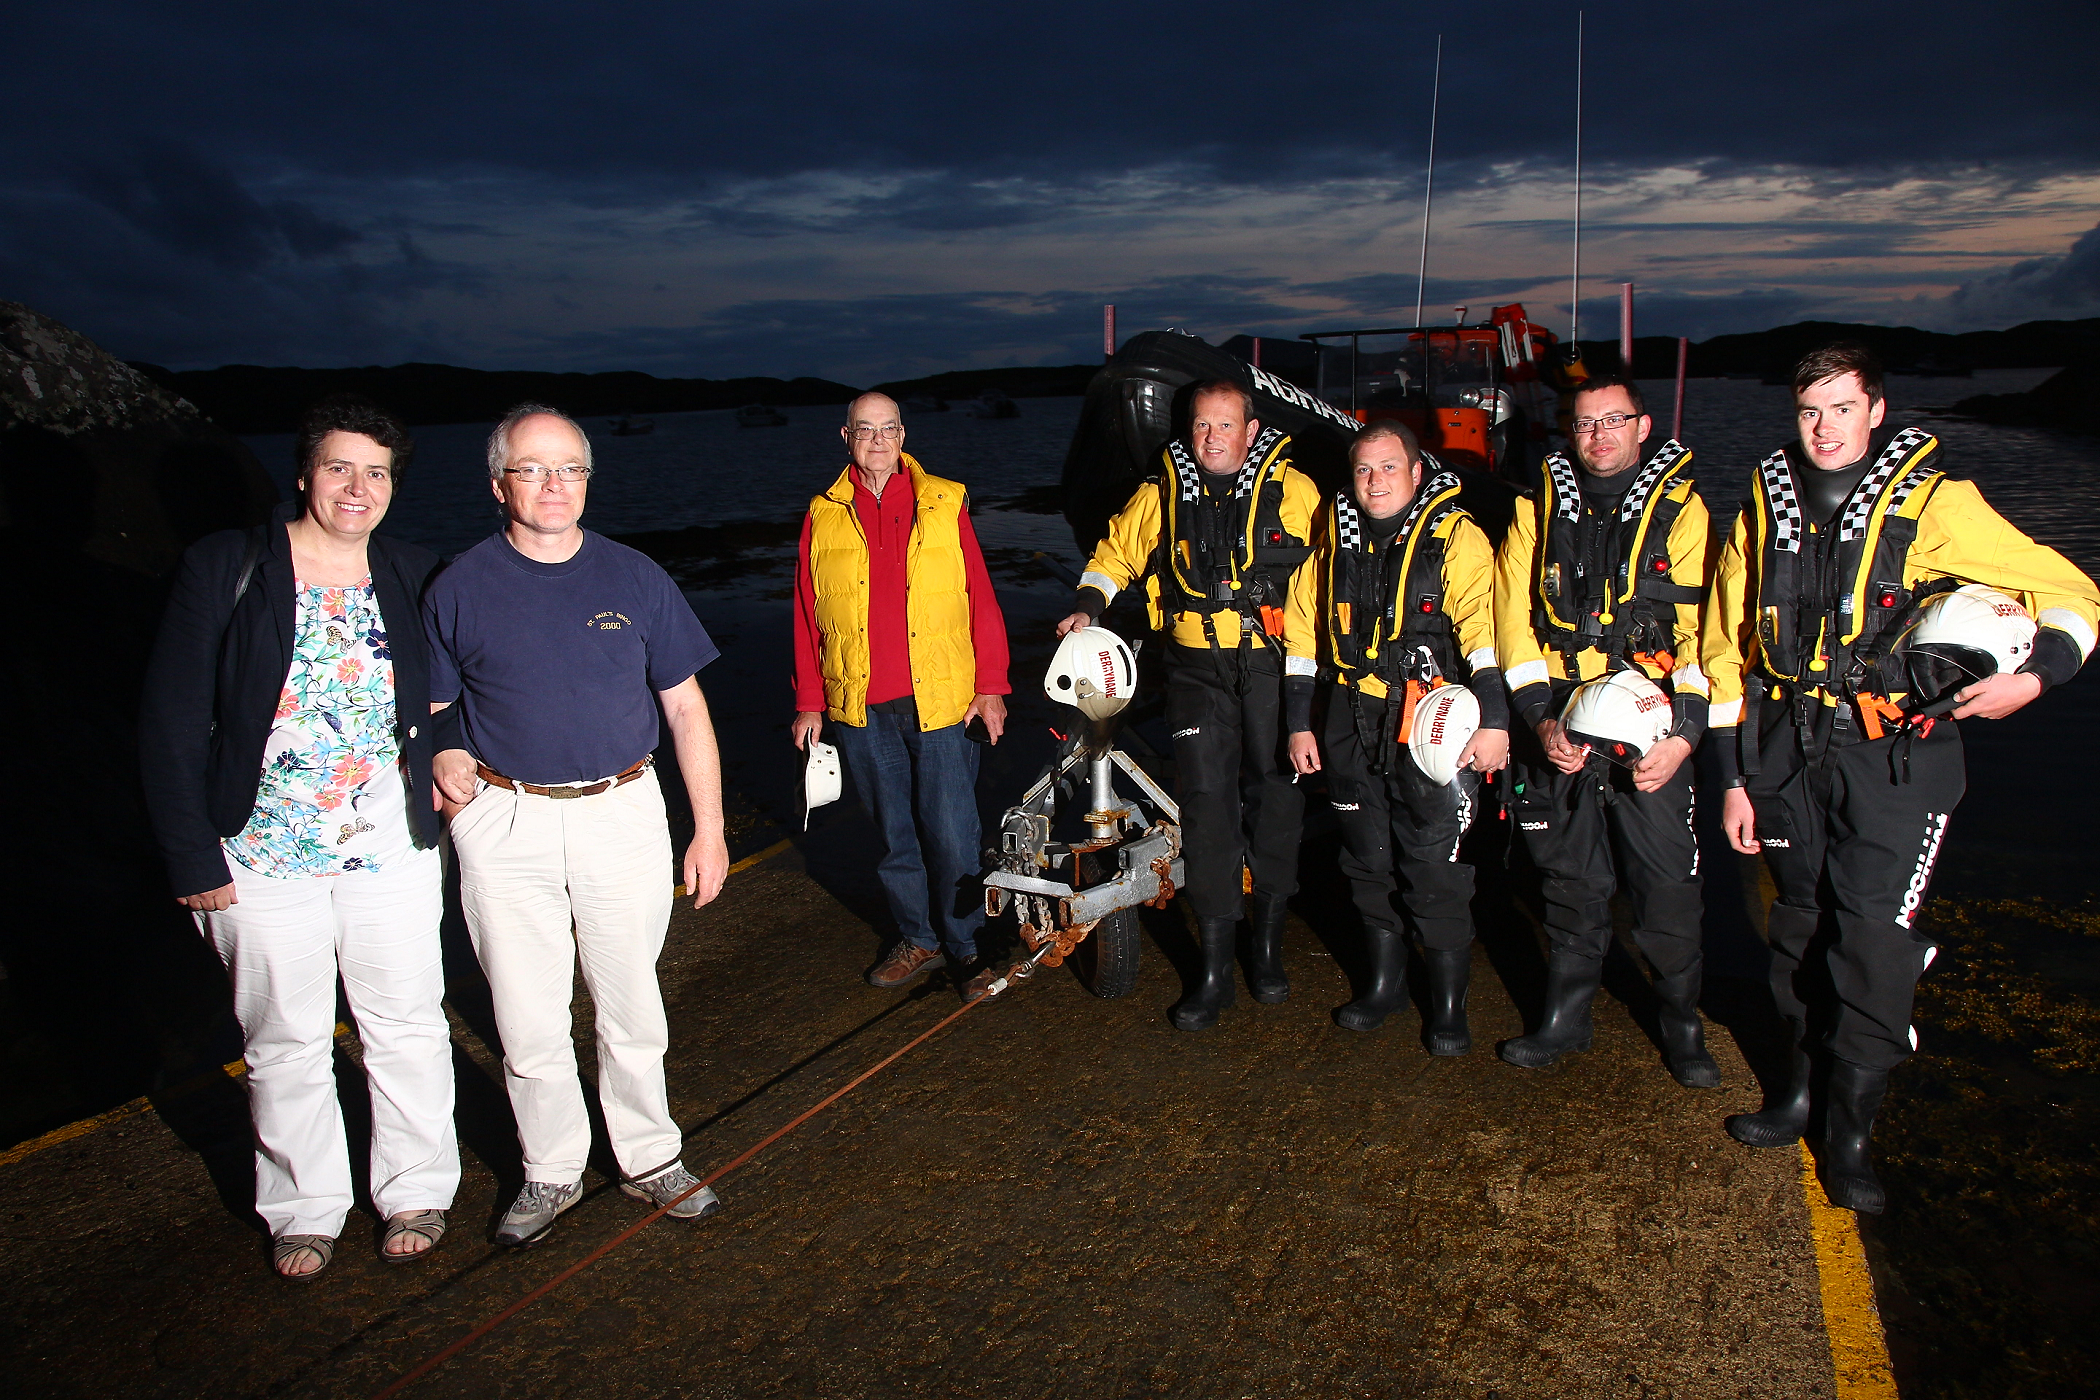 Colm Plunkett with wife visiting the Derrynane Inshore Crew. L-R David O Mahony (Secretary), Jerry Clifford (Helm), Richard Frewin (Crew), Jonathon Hughes(crew), Mikey Martin (crew).